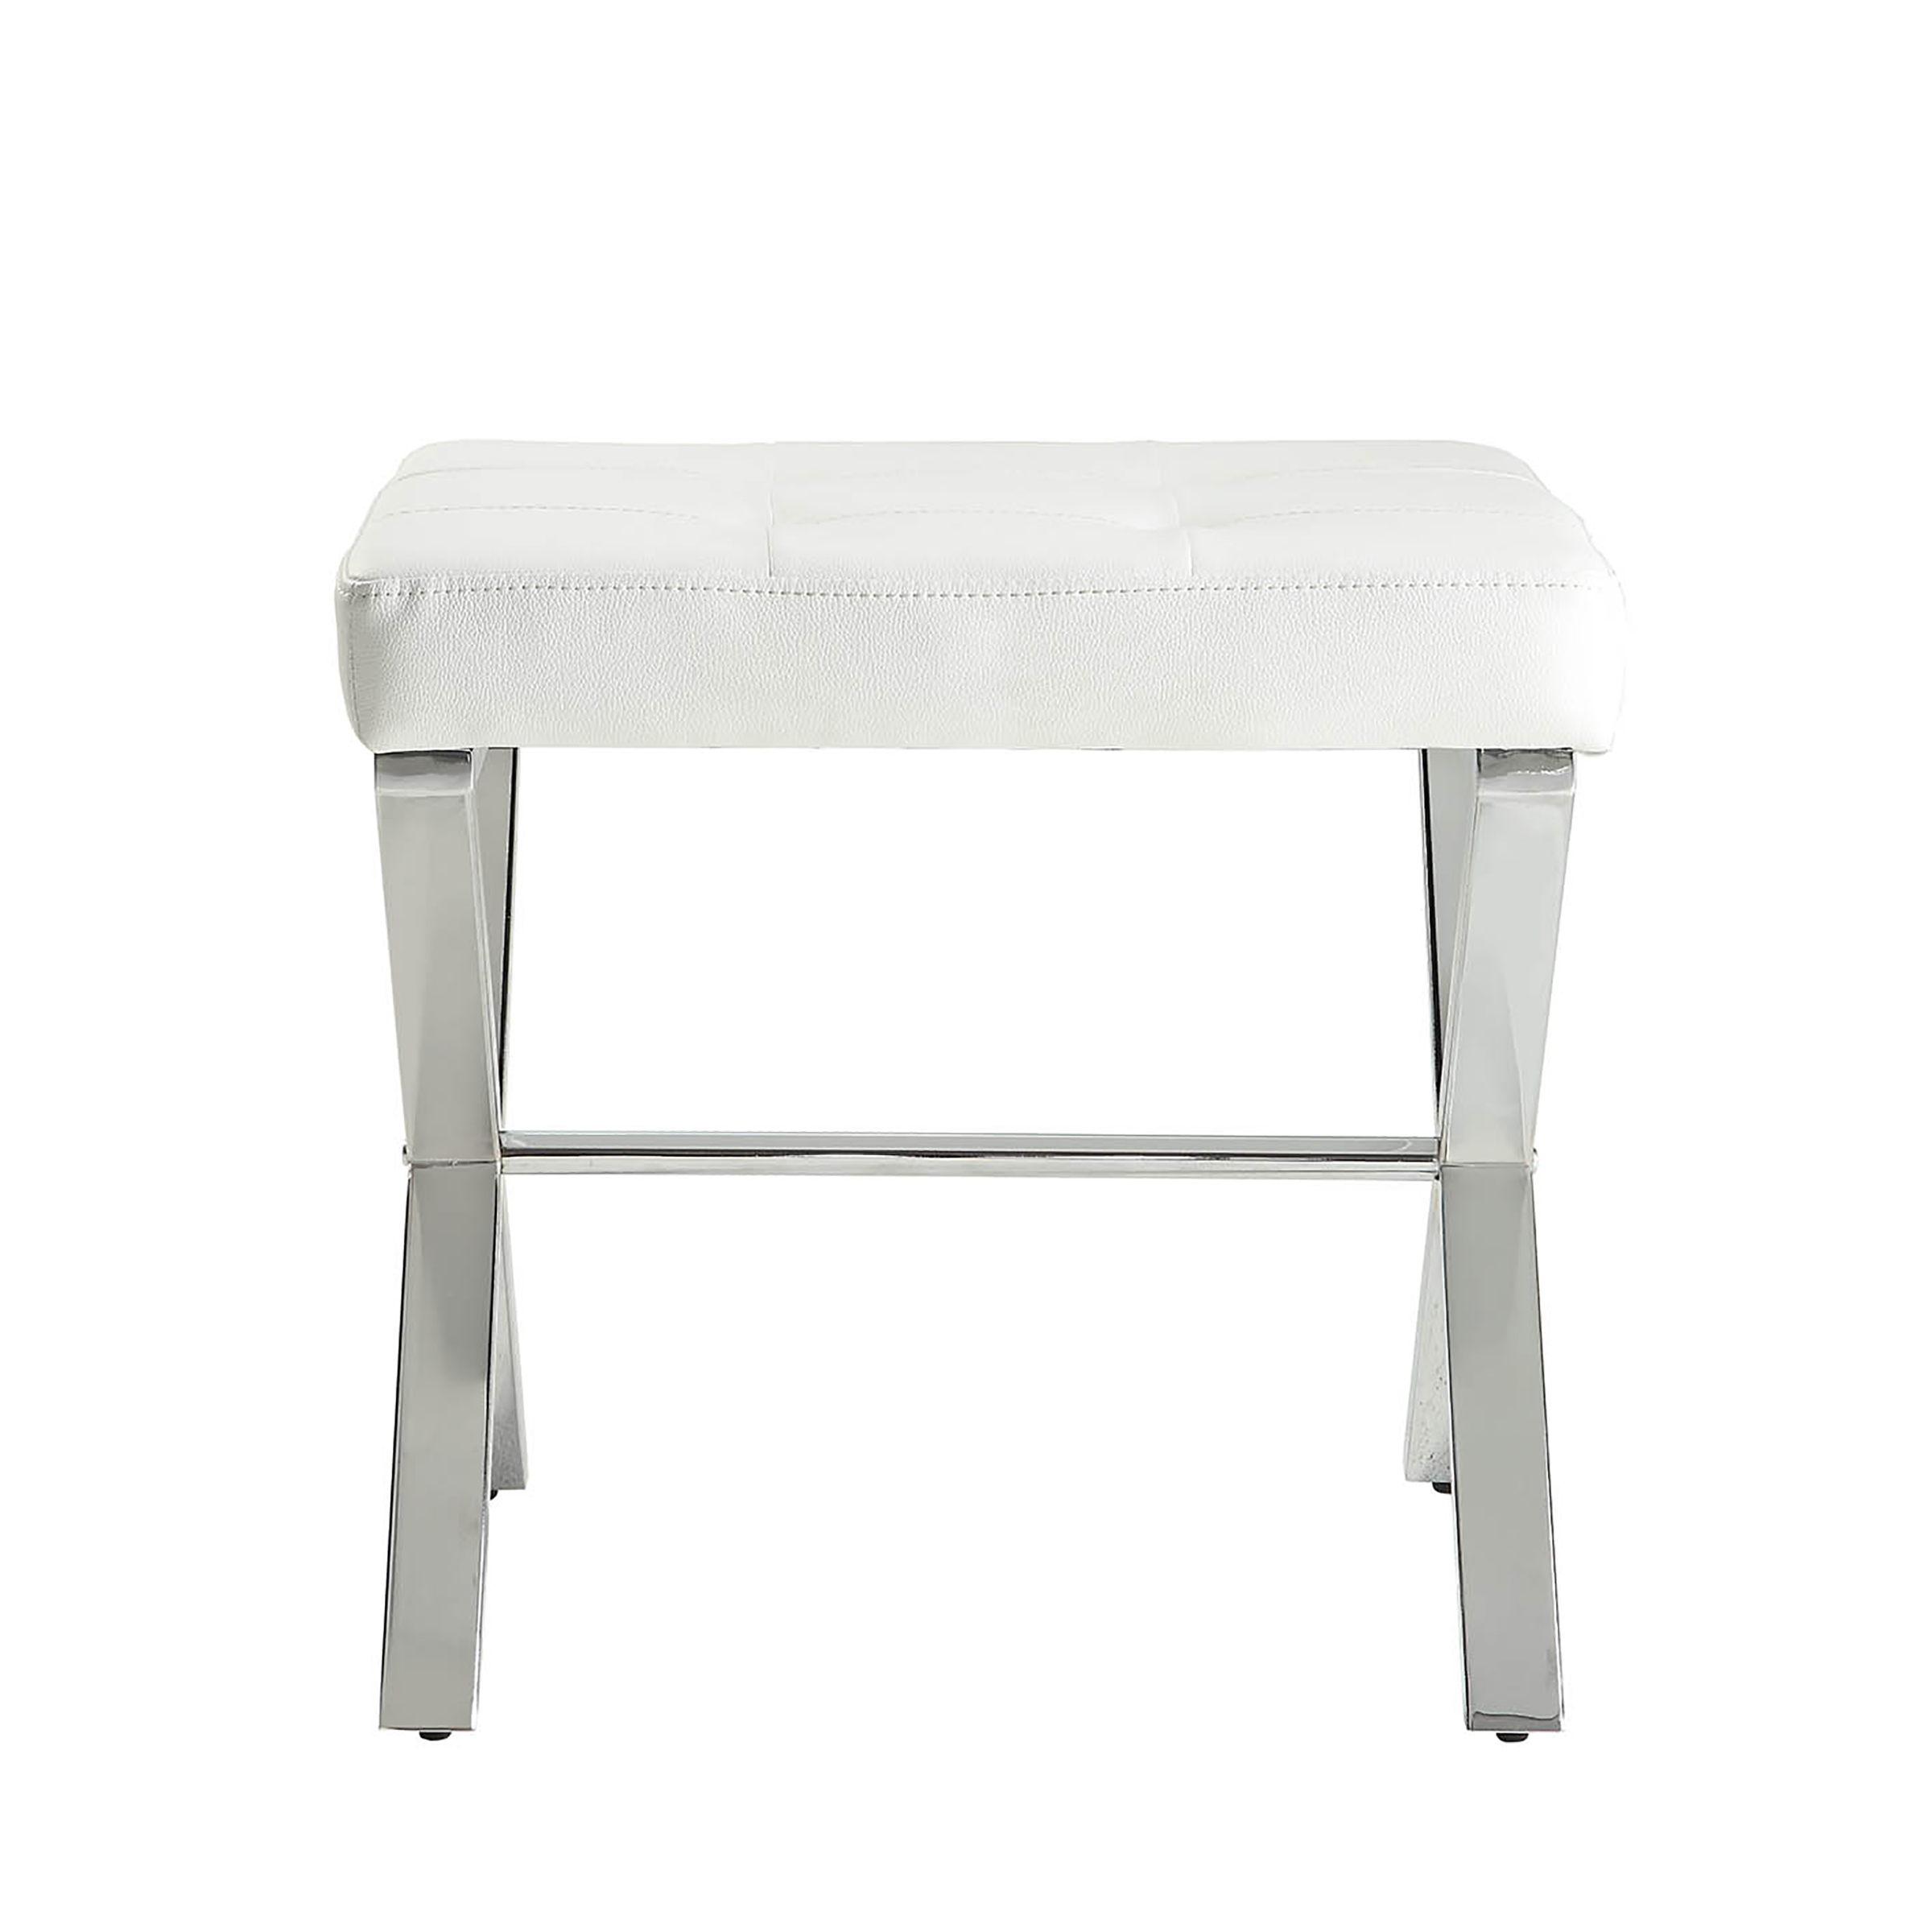 Tufted Vanity Chair Carolina Chair And Table Verona White Tufted P U Seat Vanity Bench With Chrome X Leg Base